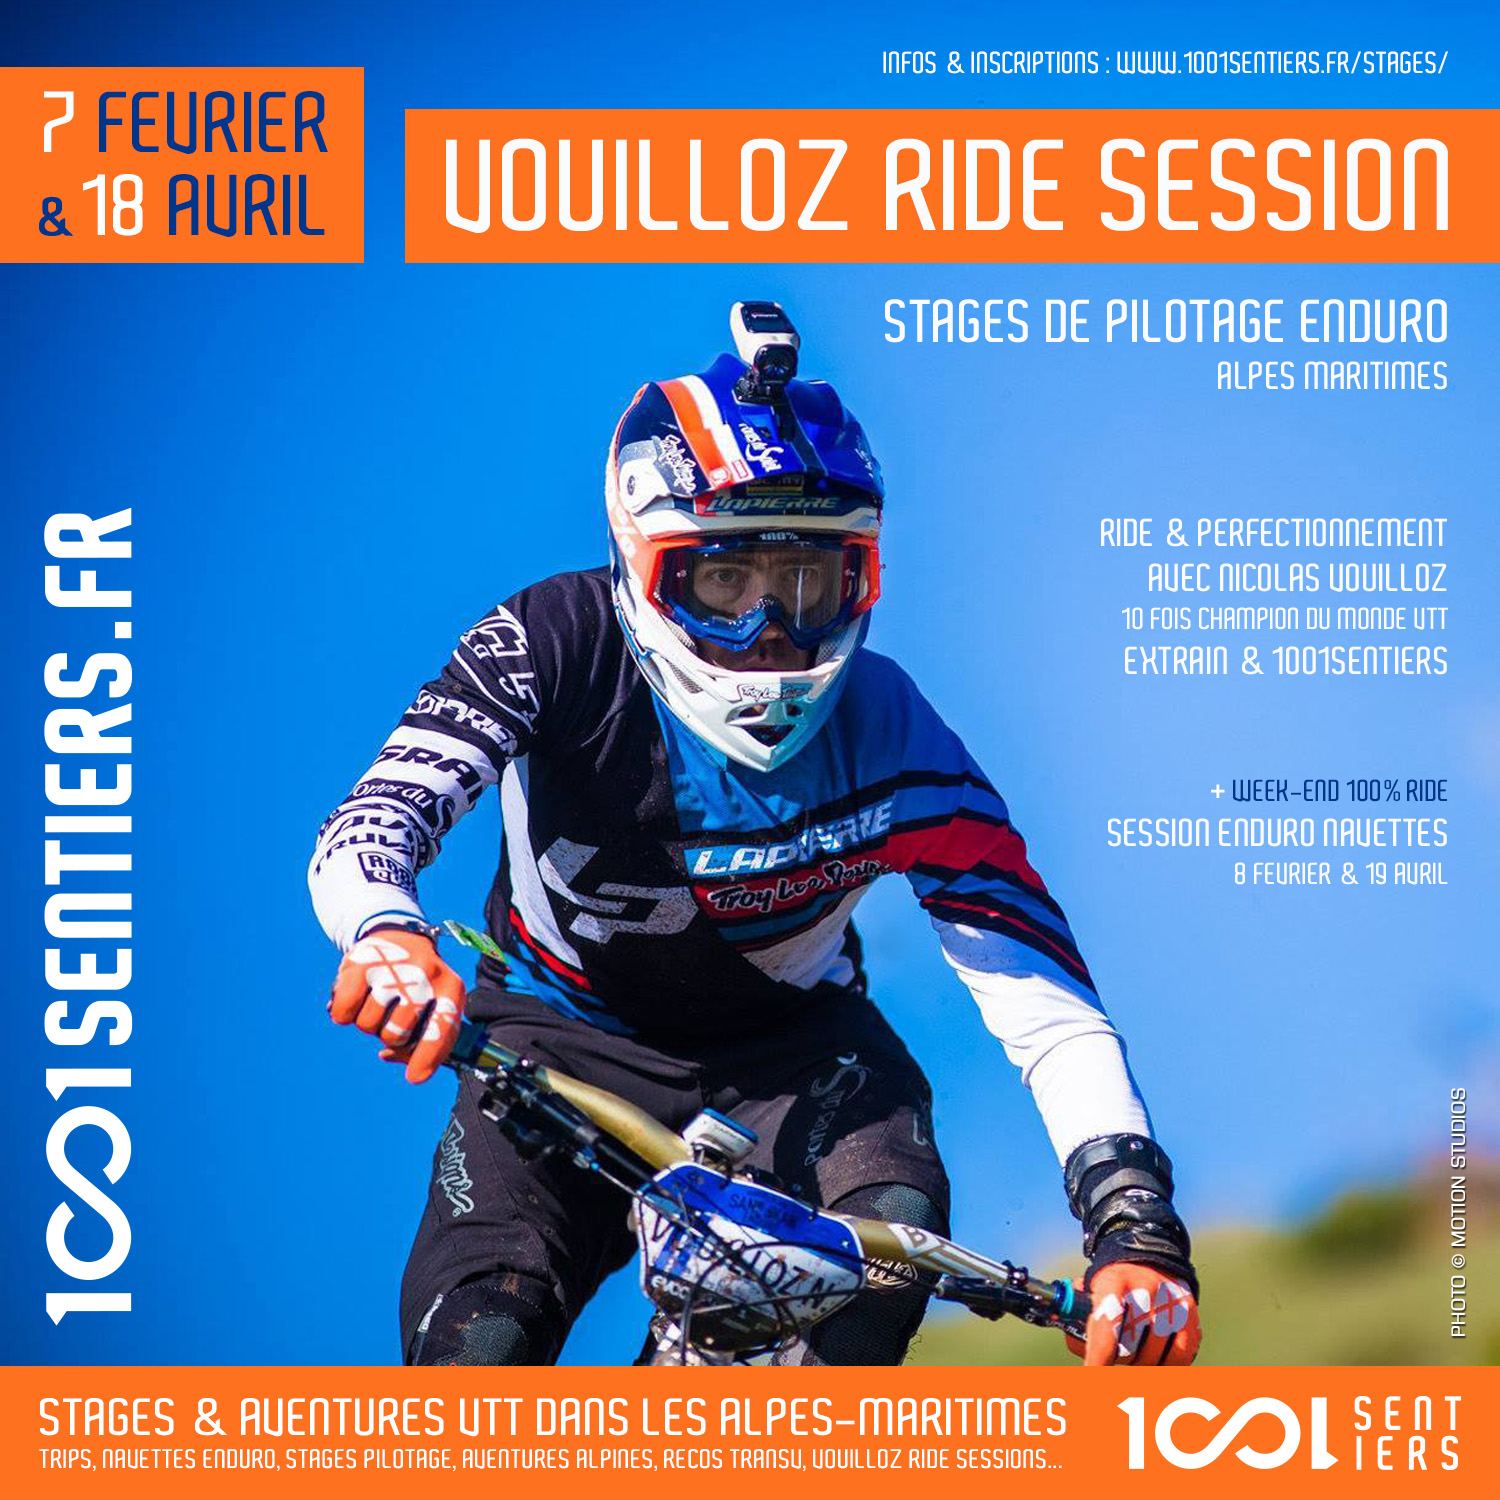 vouilloz-ride-session-2015